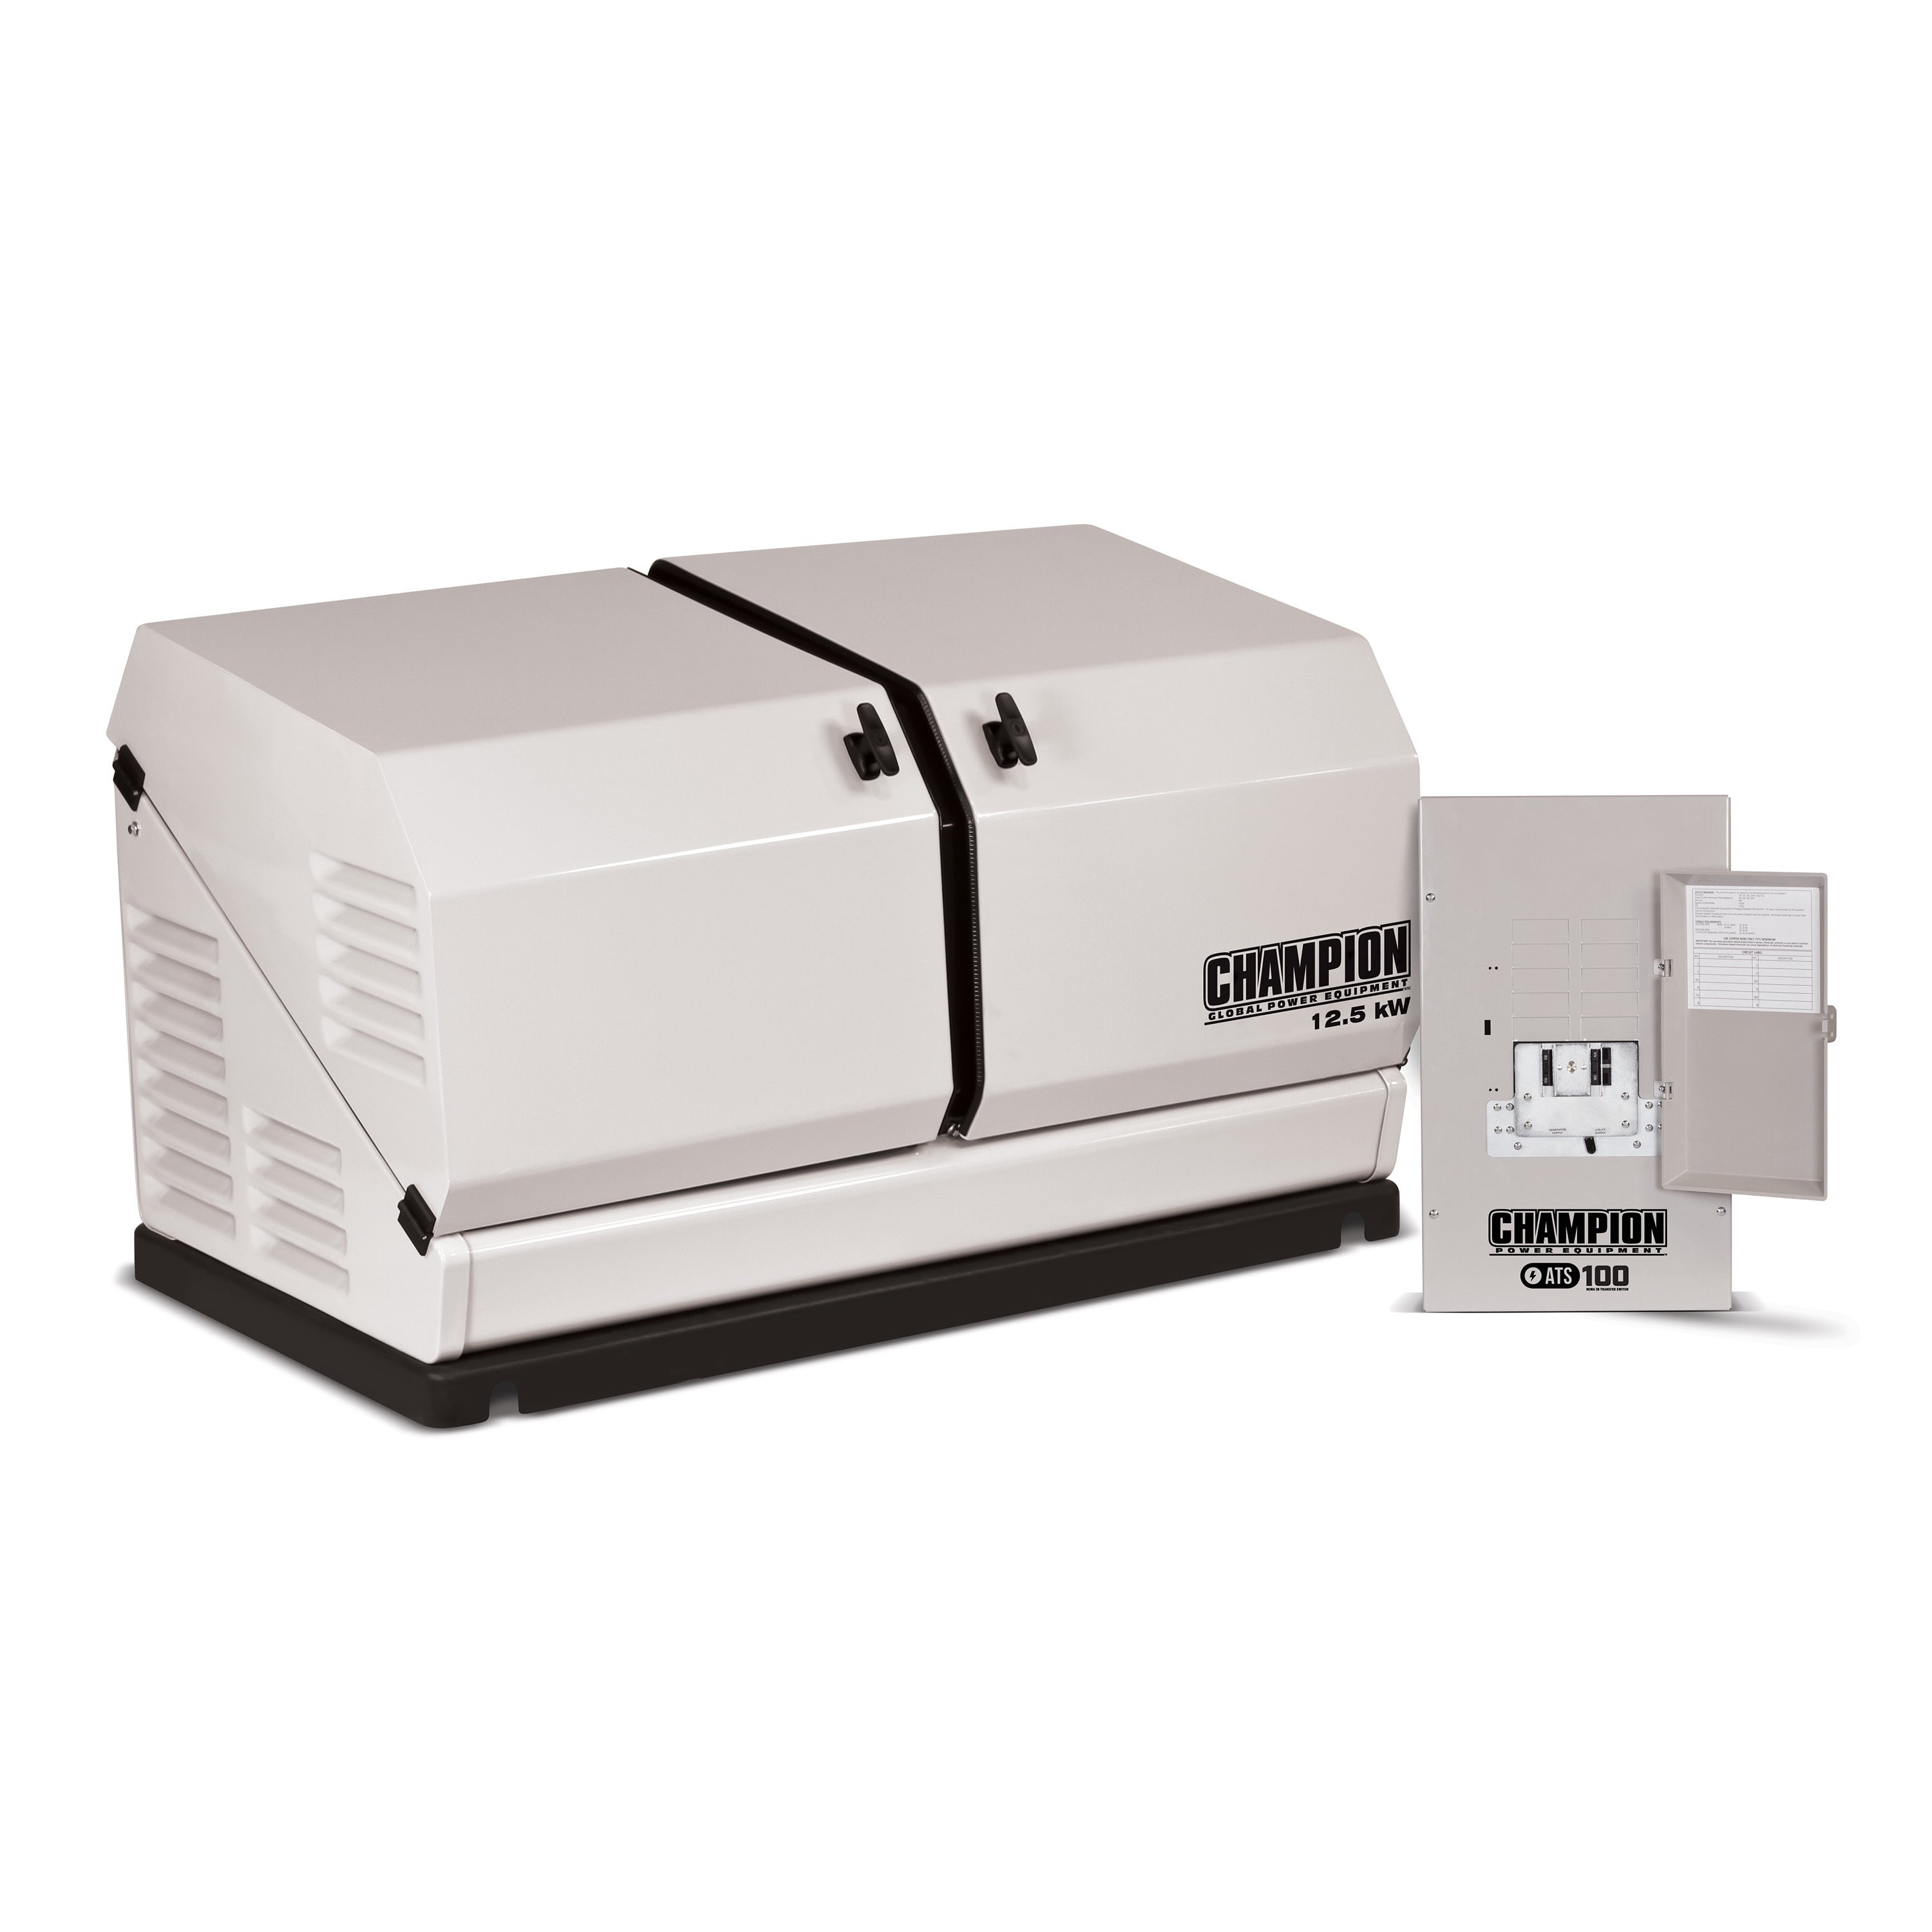 Champion 12 5 kW Home Standby Generator with 100 Amp Indoor Rated